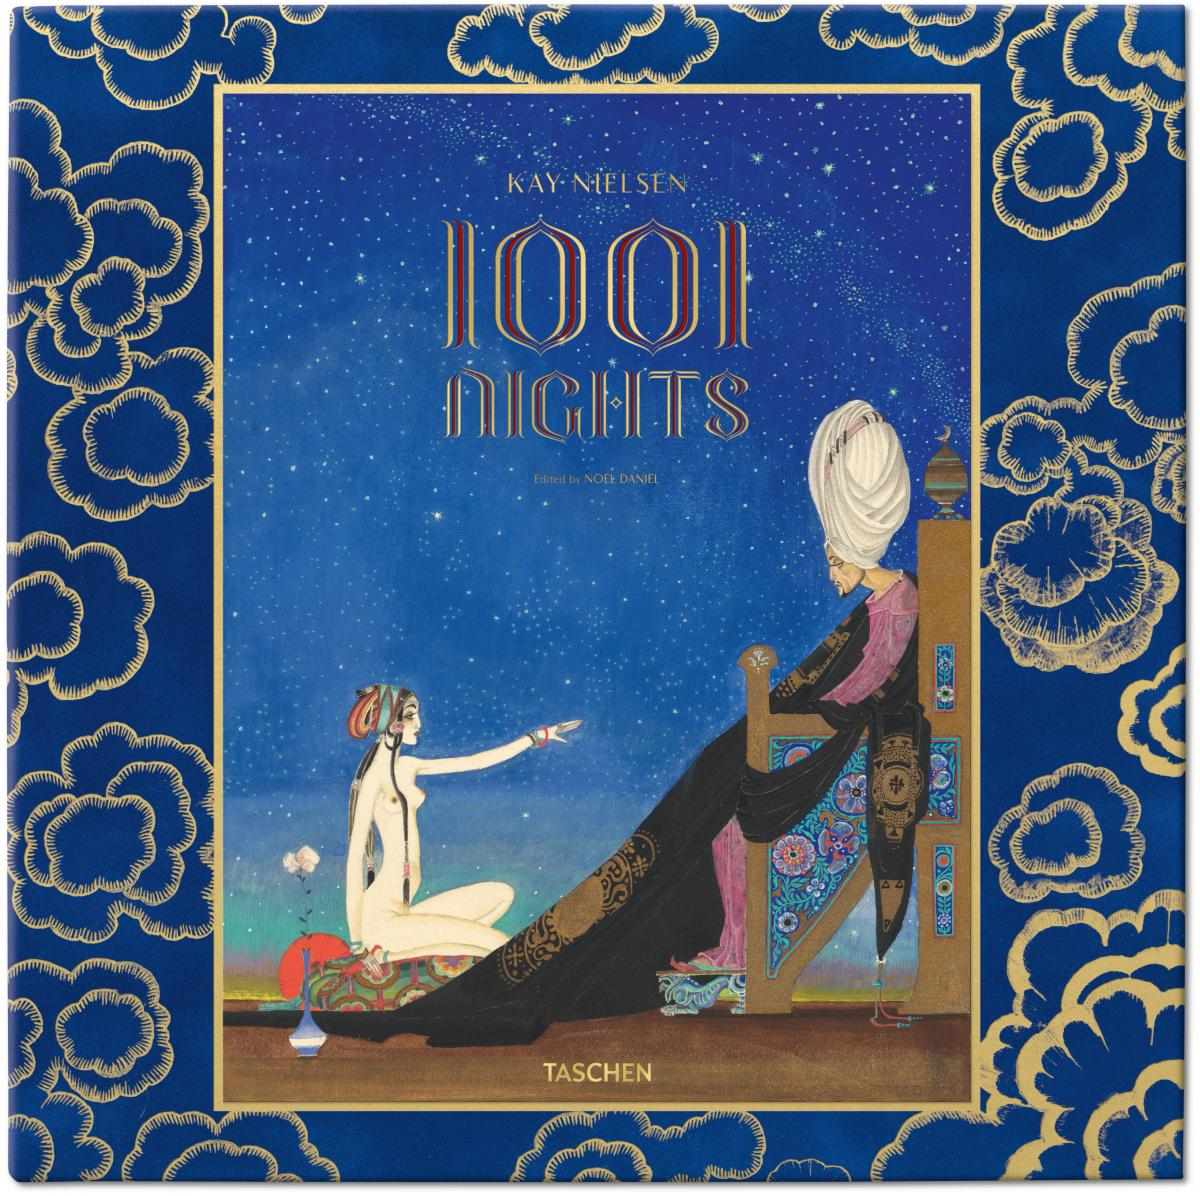 The cover of Kay Nielsen's A Thousand and One Nights.